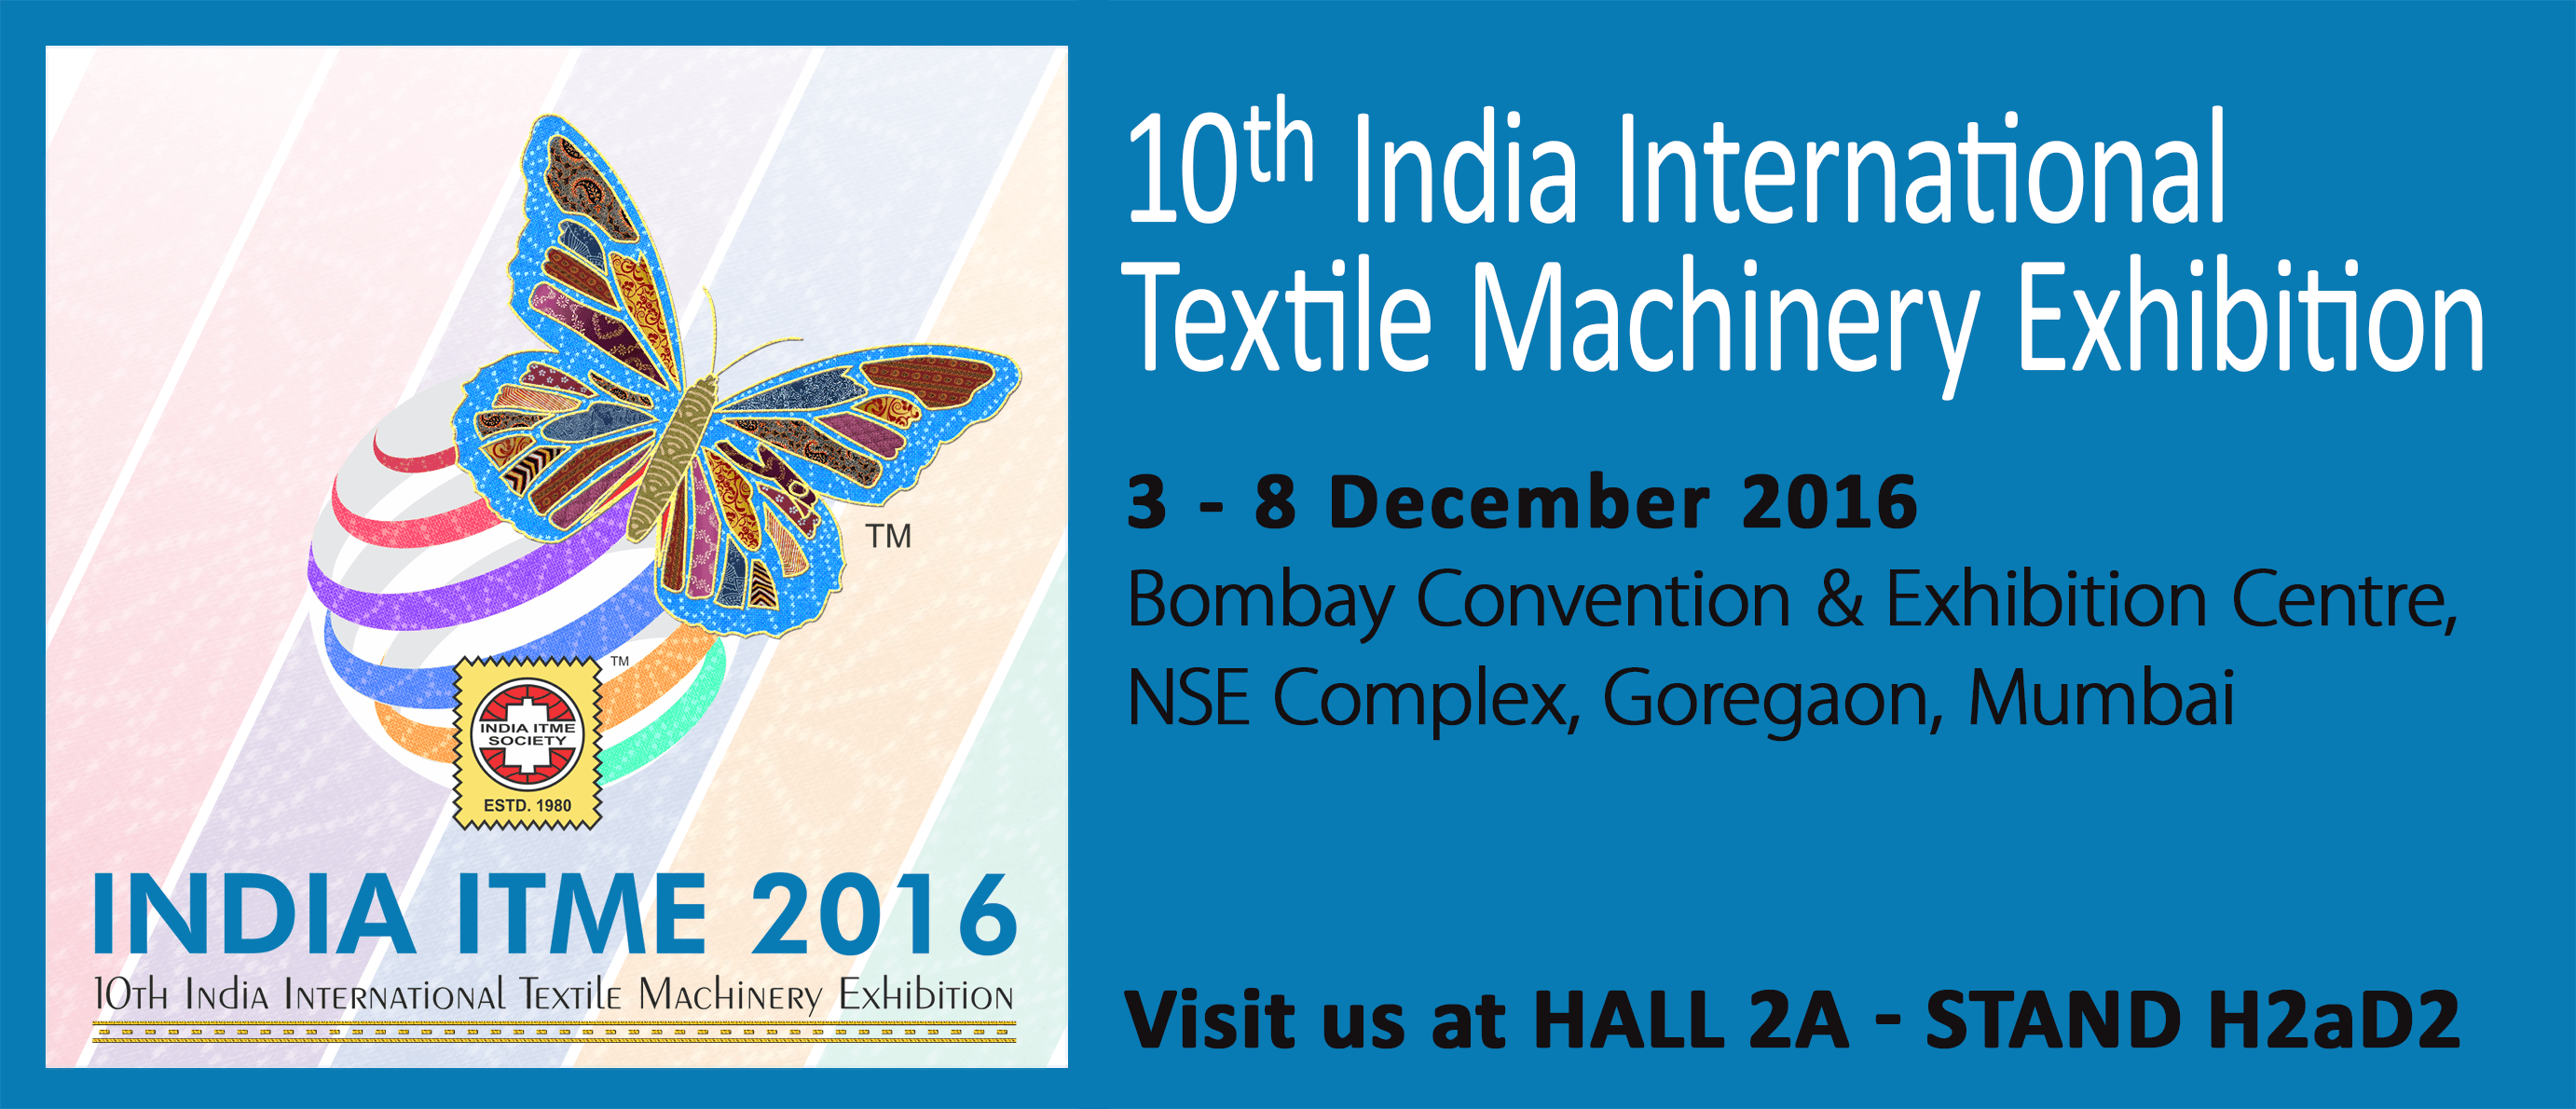 Foire_ITME2016_India_Website-150x150.png